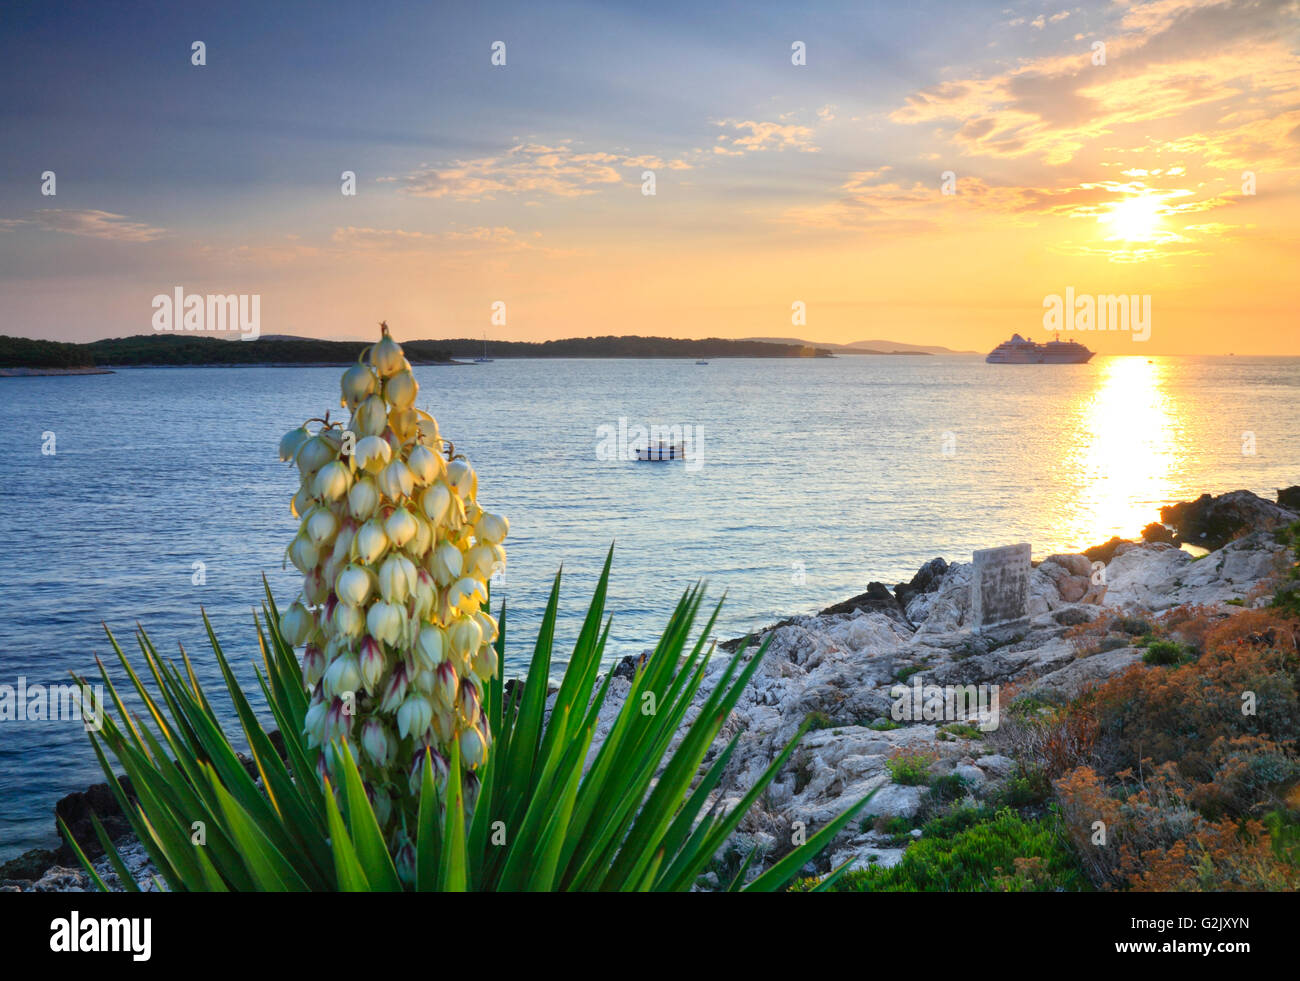 Sunset on island Hvar with beautiful Yucca palm in bloom in Croatia - Stock Image